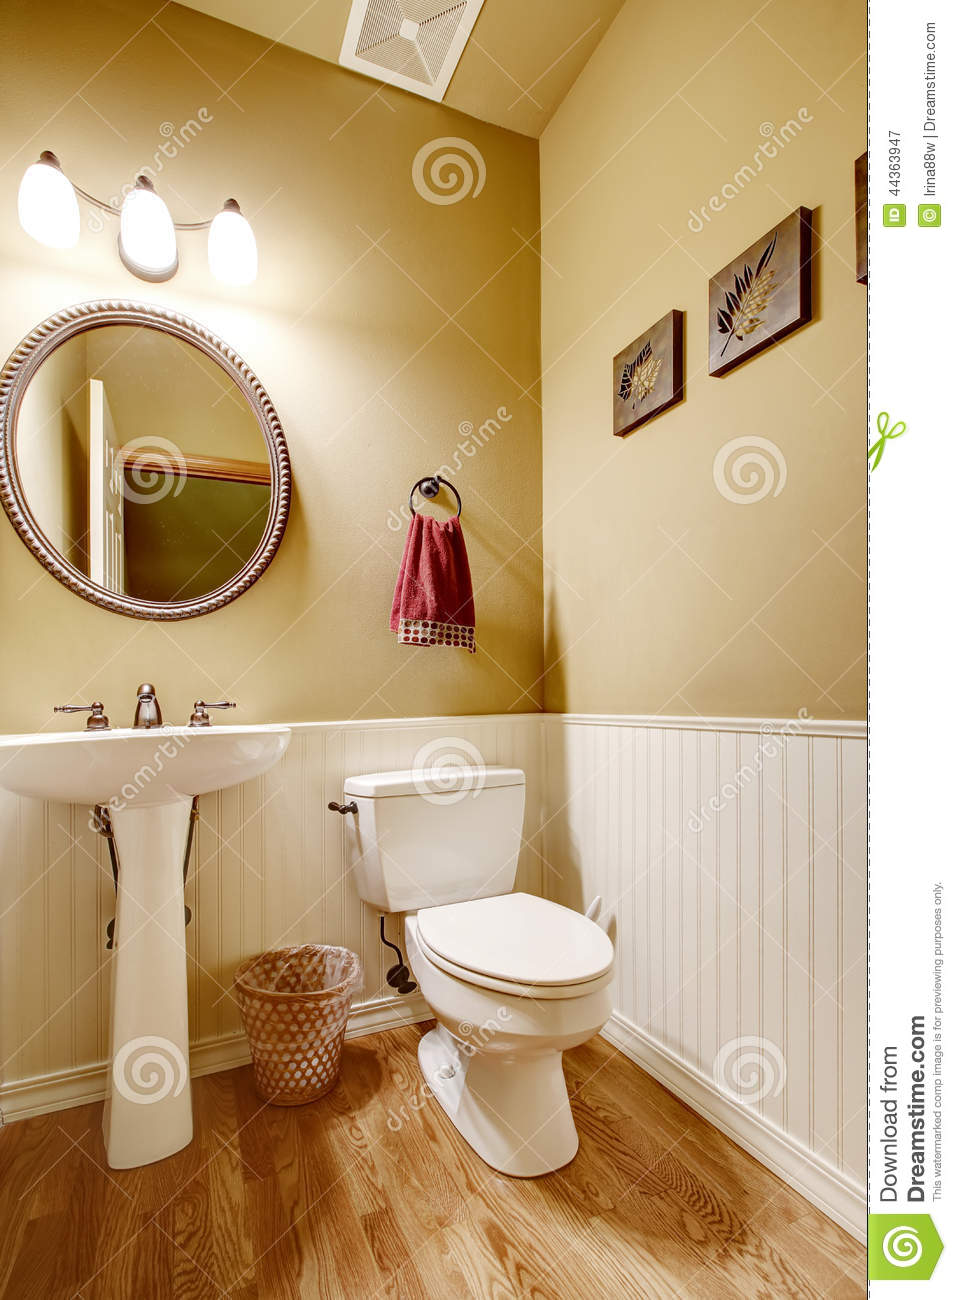 Small Bathroom With White Wall Trim Stock Image Image Of Mirror Real 44363947